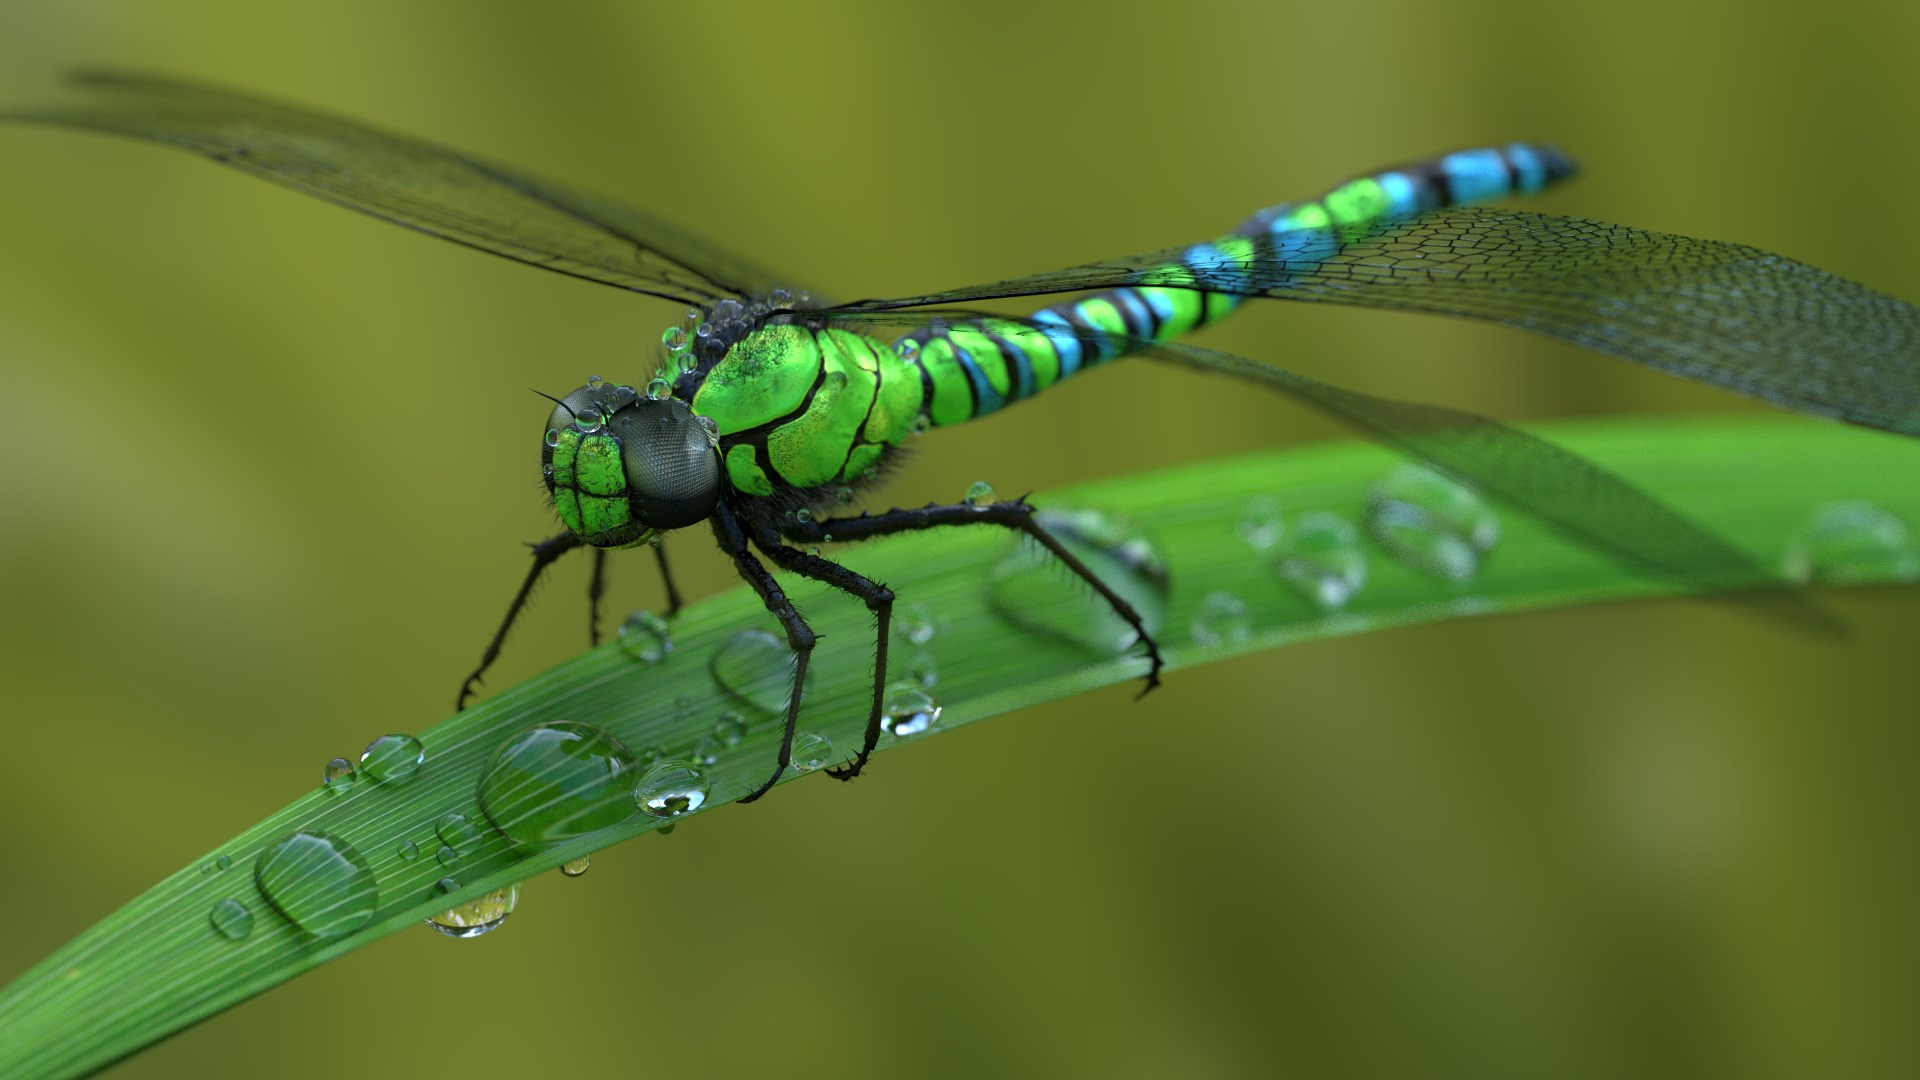 Robinson-London-pictures-of-dragonfly-1920x1080-px-wallpaper-wp3809902